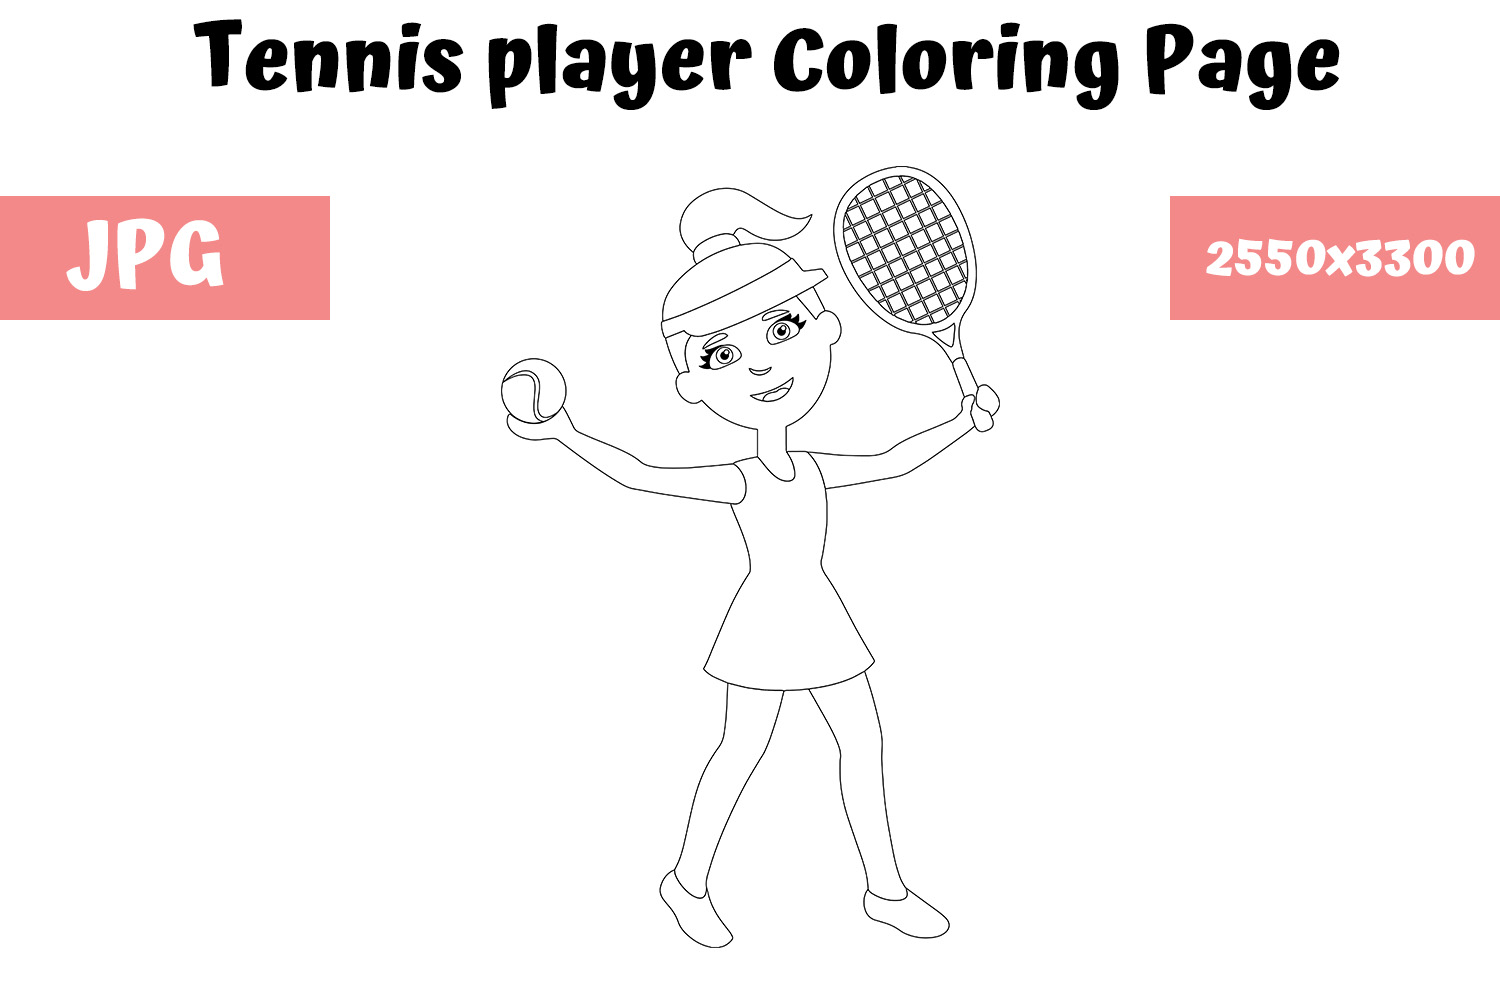 Tennis Player Coloring Page For Kids Graphic By Mybeautifulfiles Creative Fabrica